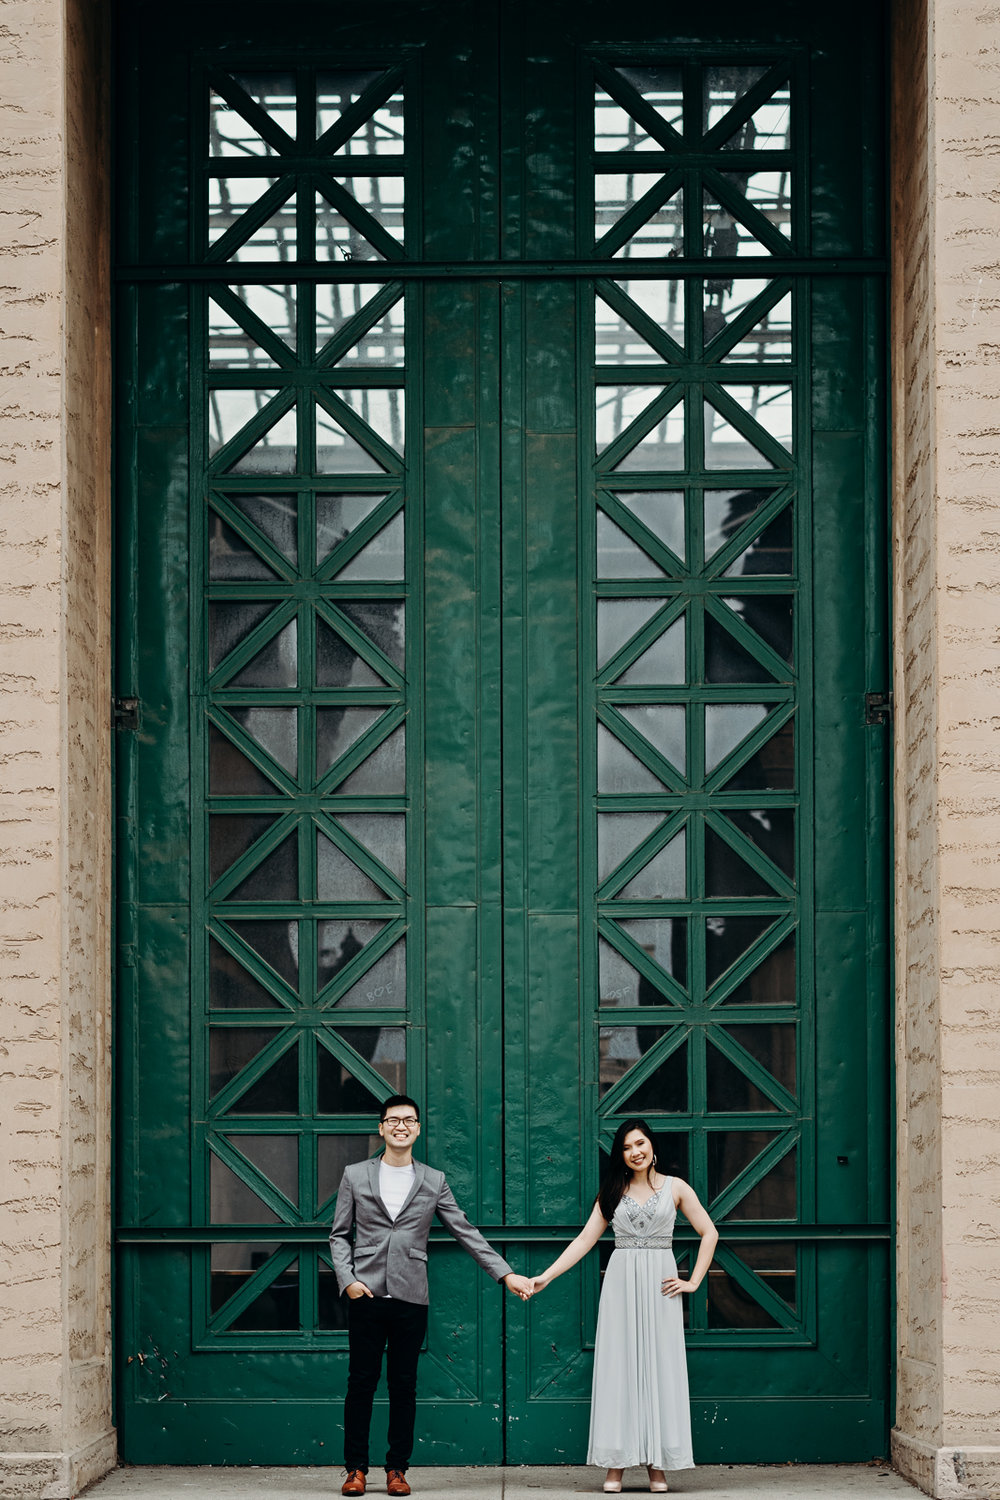 Engaged couple holds hands in front of a tall green door at Palace of Fine Arts Theatre in San Francisco, CA.